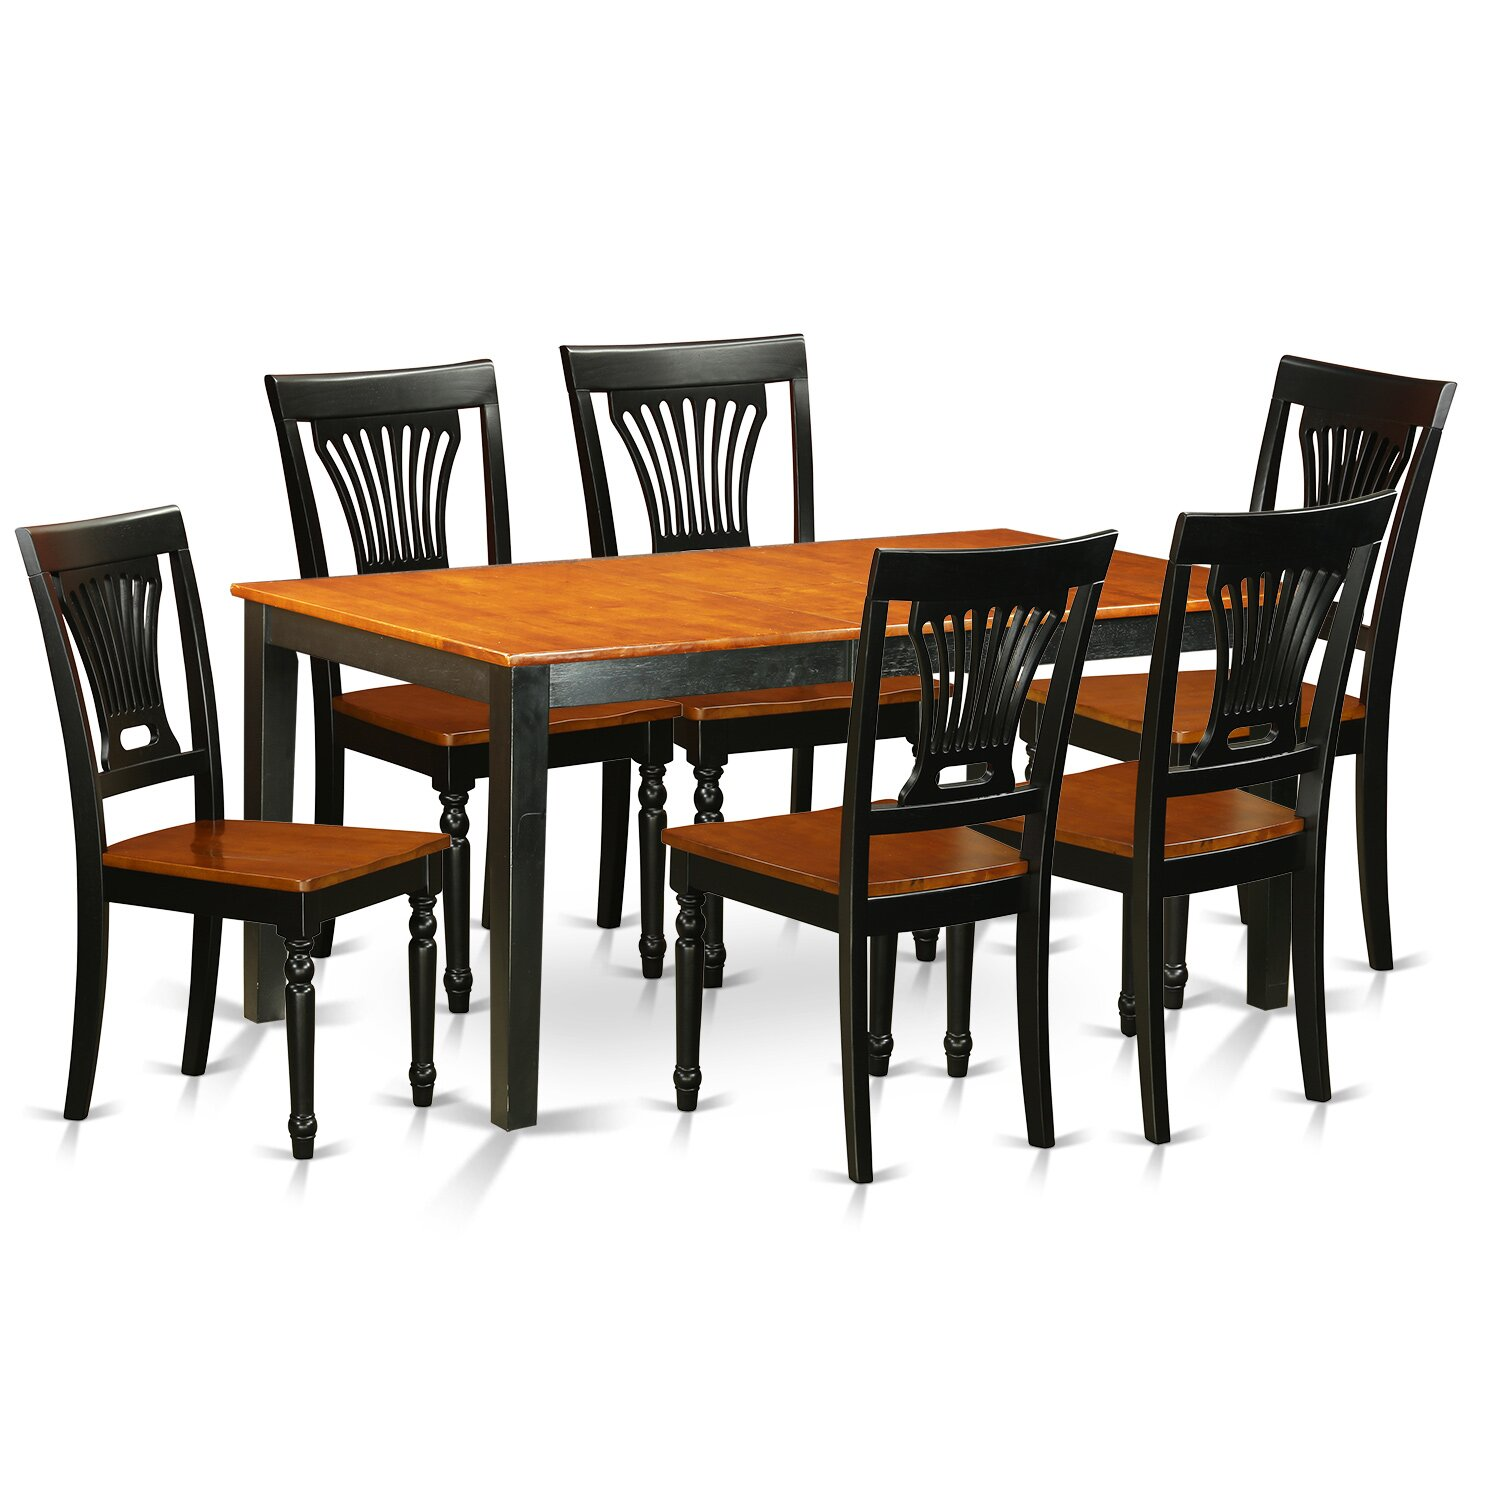 East west nicoli 7 piece dining set wayfair for Kitchenette sets furniture